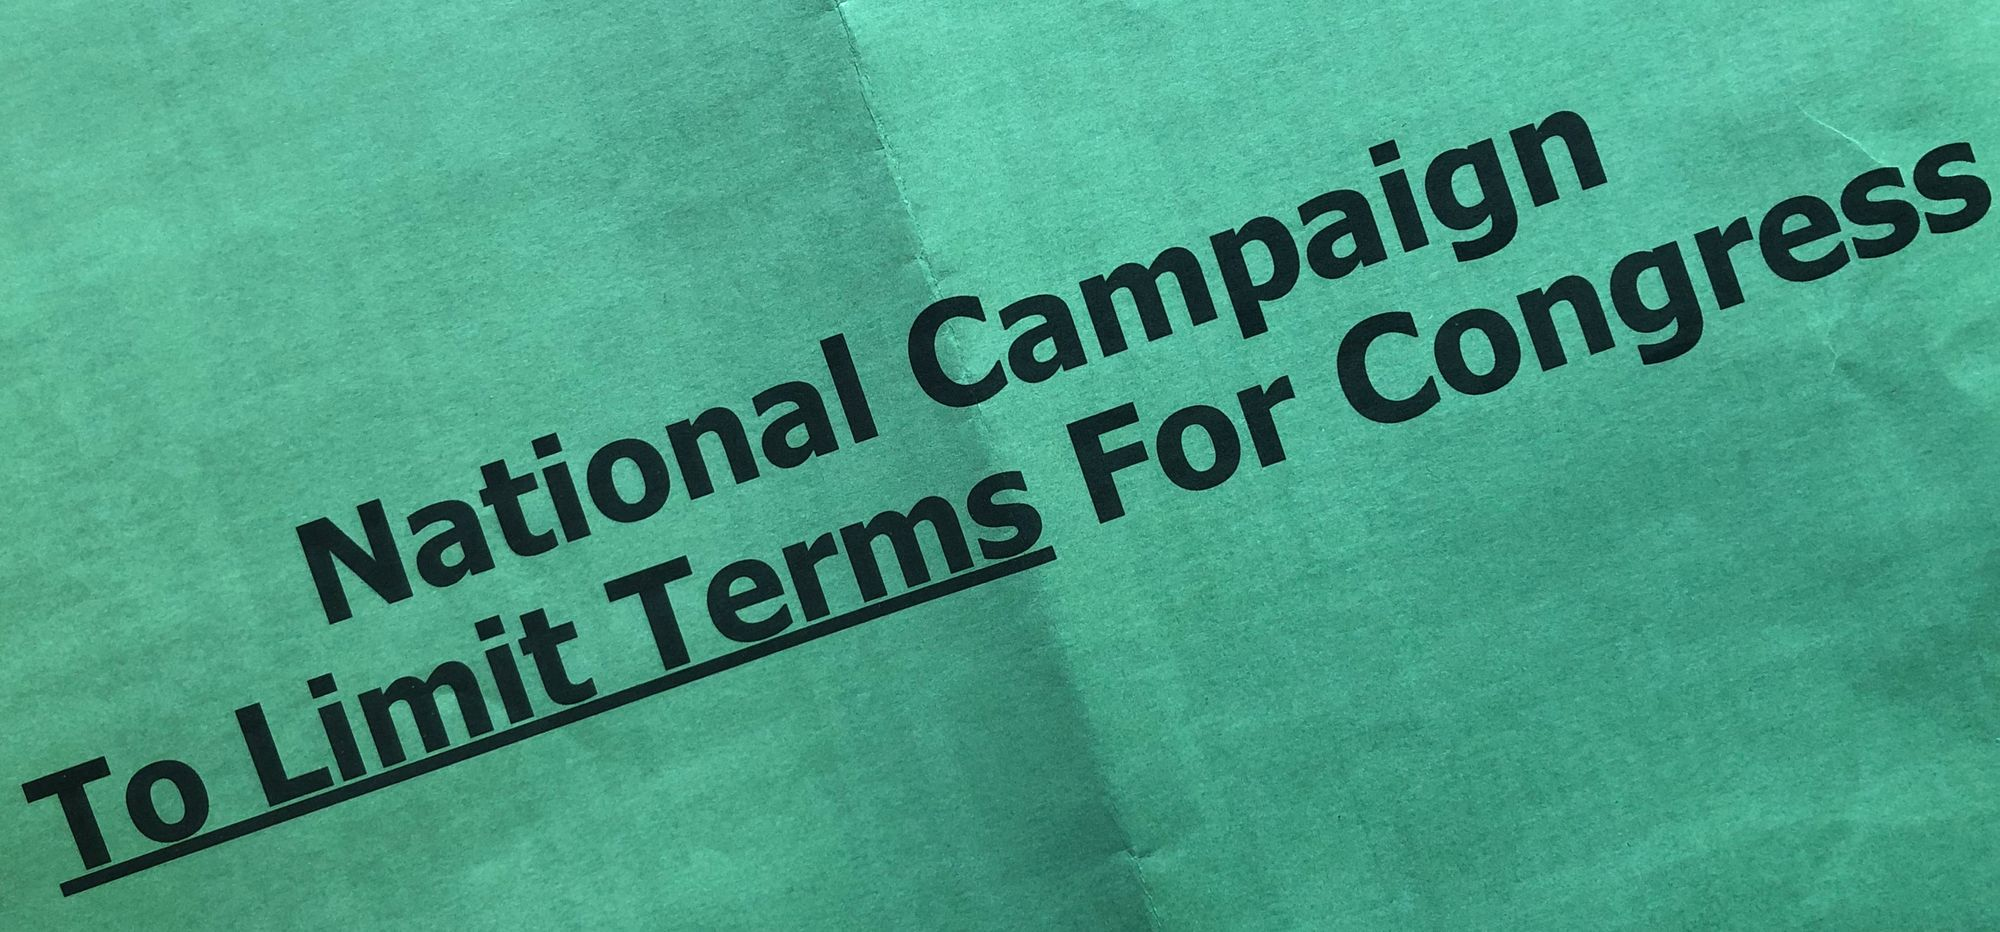 National Campaign To Limit Terms For Congress